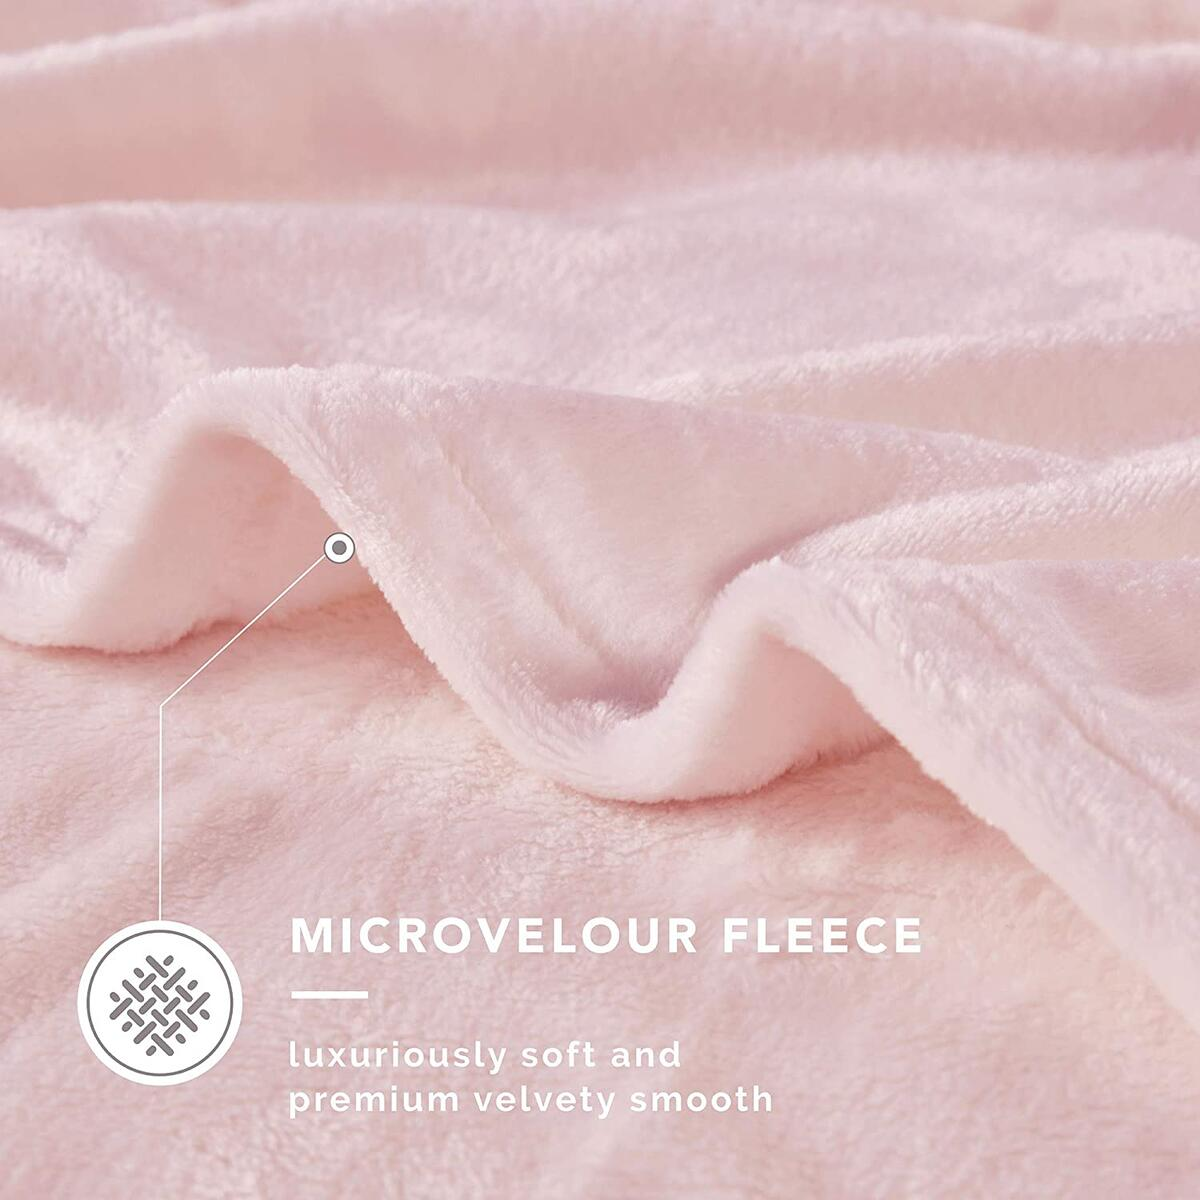 60x80 TWIN Size Any Color DEGREES OF COMFORT Fleece Twin Blanket for Bed - MicroVelour Velvet | Silky Soft & Lightweight | Use on Couch, BedT or Camping | 4 Sizes 10 Colors Available Plush Throw Blanket, 60x80 TWIN Size Any Color